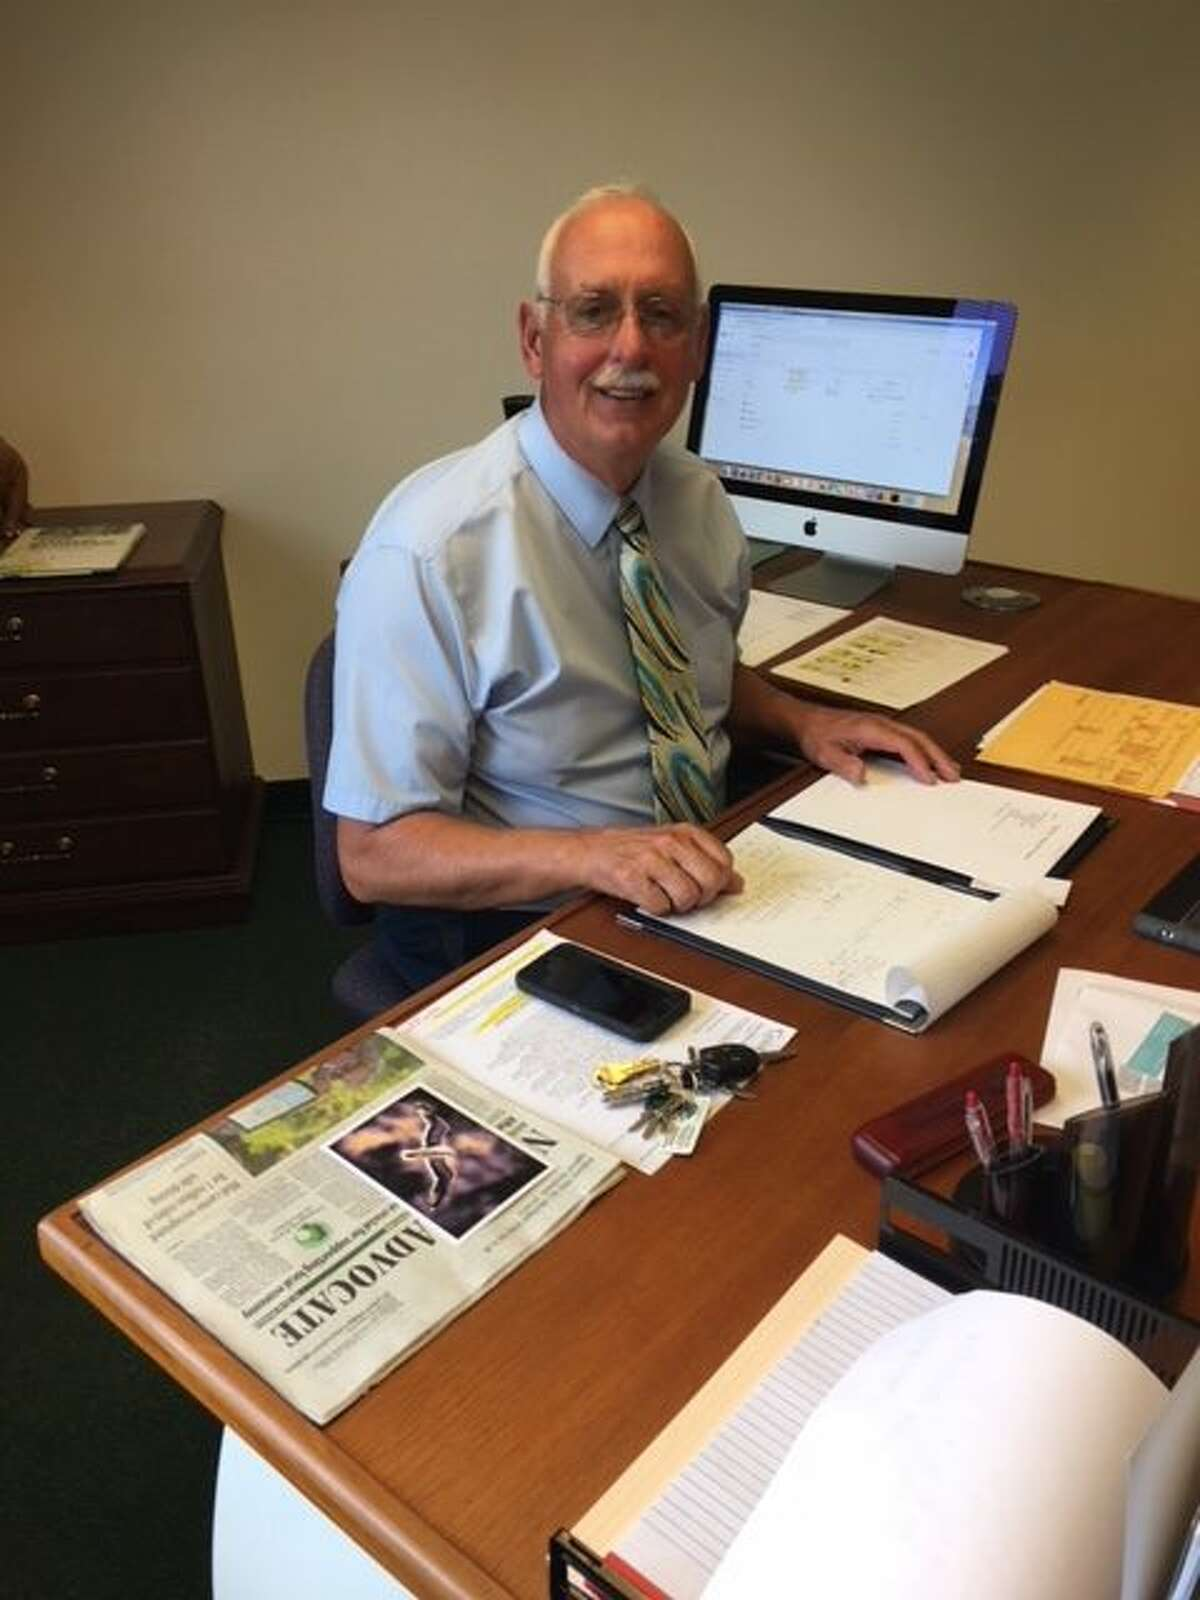 Onekama Consolidated Schools interim superintendent Mark Parsons began on the job on Monday. Parsons was hired on a one-year contract while the district looks at finding a permanent superintendent for the start of the 2020-21 school year. (Courtesy photo)